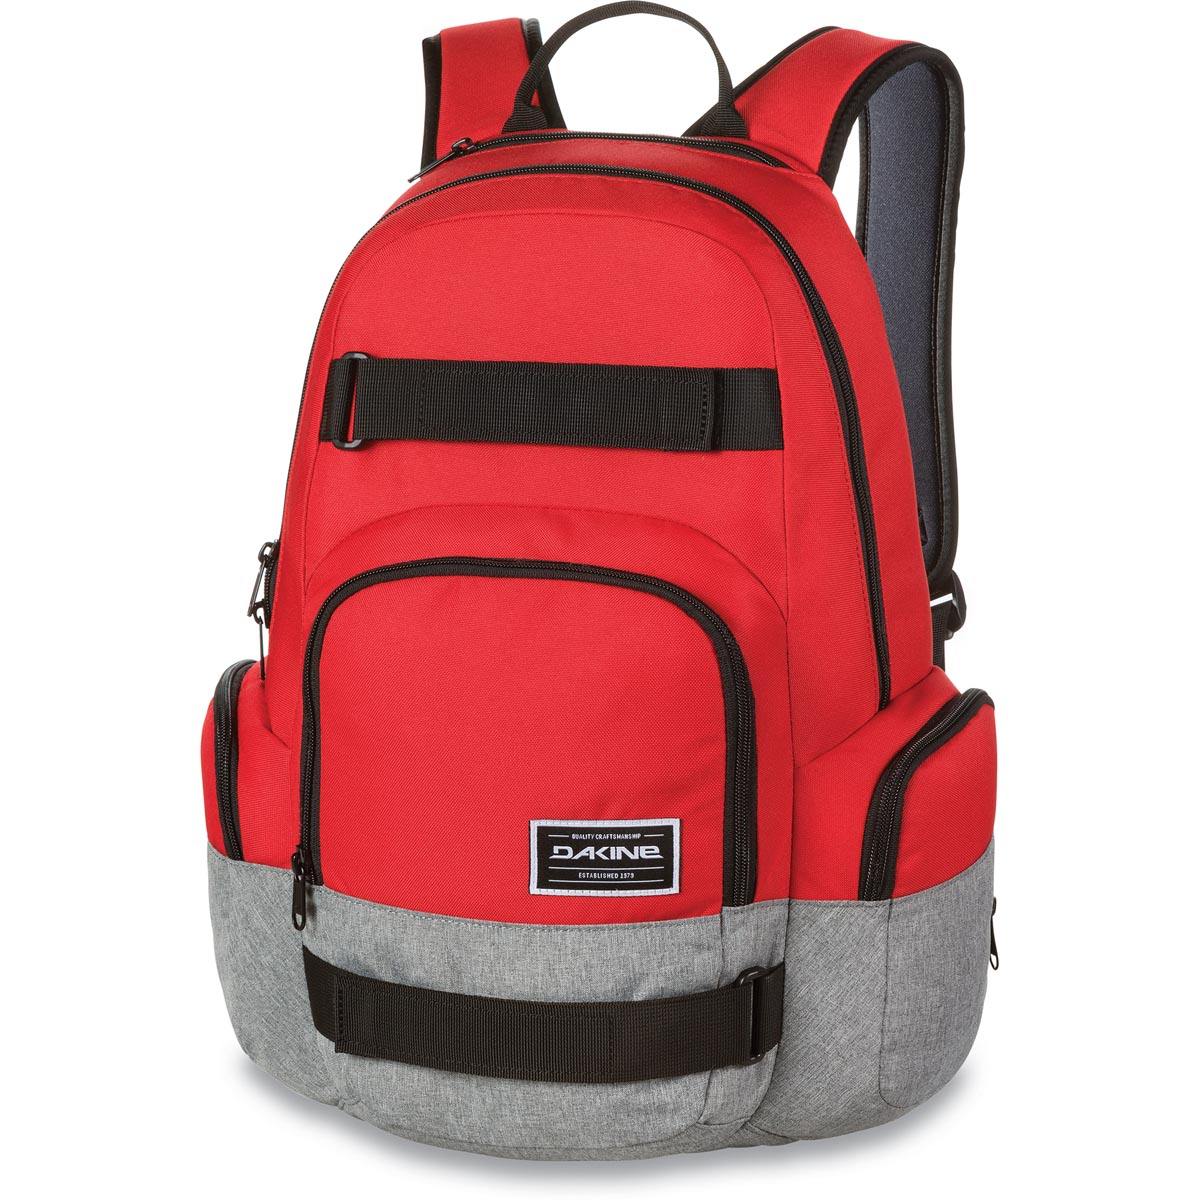 39bbd55b32a4a Dakine Atlas 25L Backpack Red